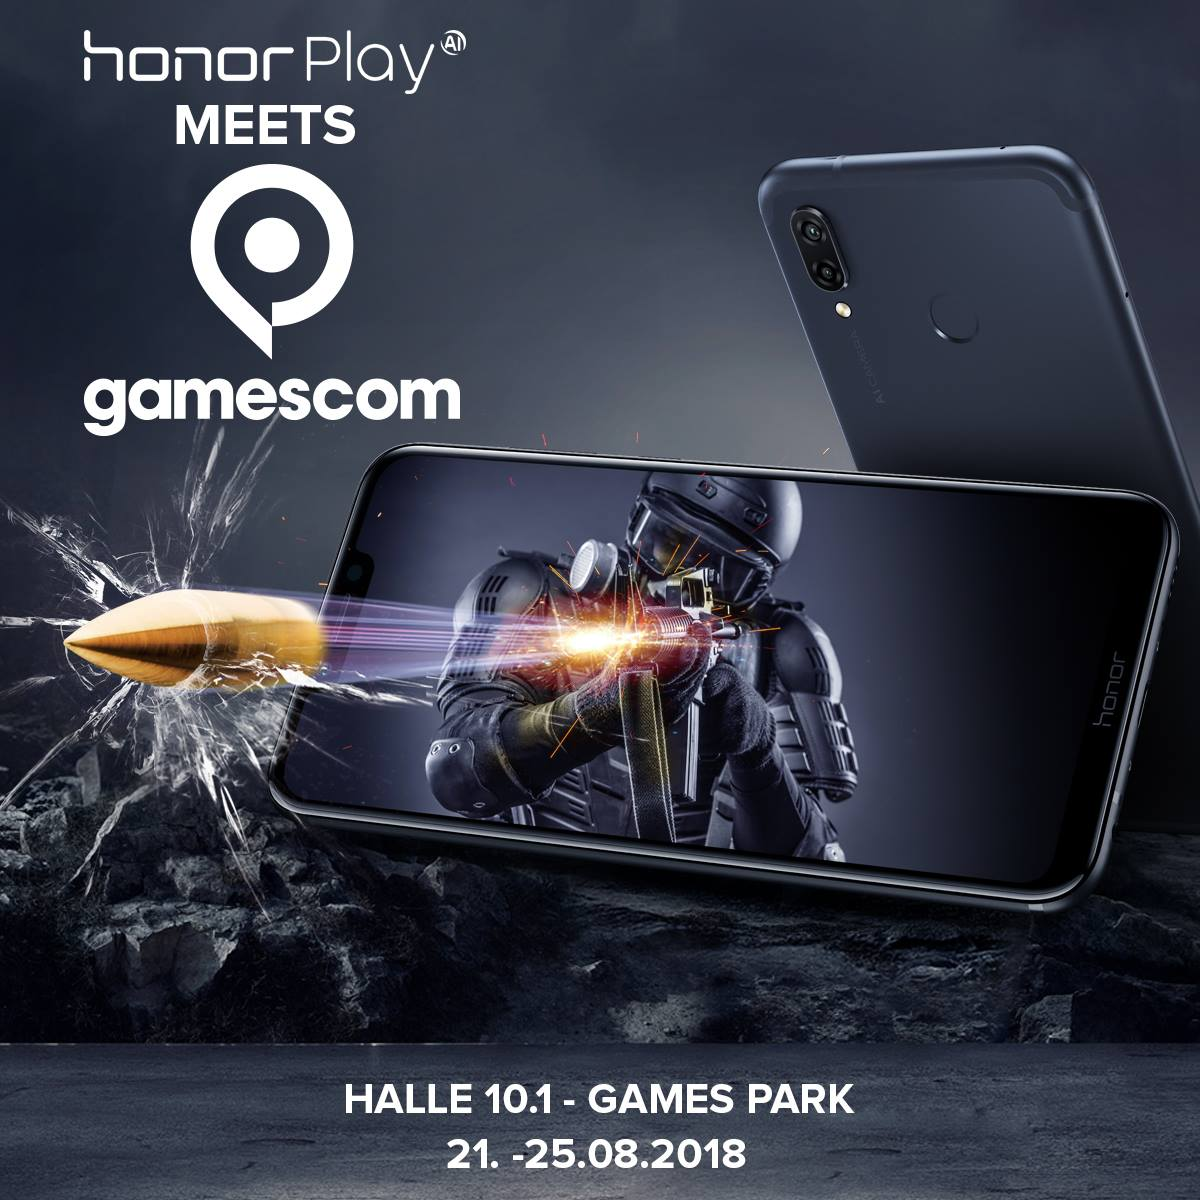 honor-play-gamescom Honor stellt das Honor Play für Westeuropa auf der gamescom vor Games Google Android Hardware Honor Smartphones